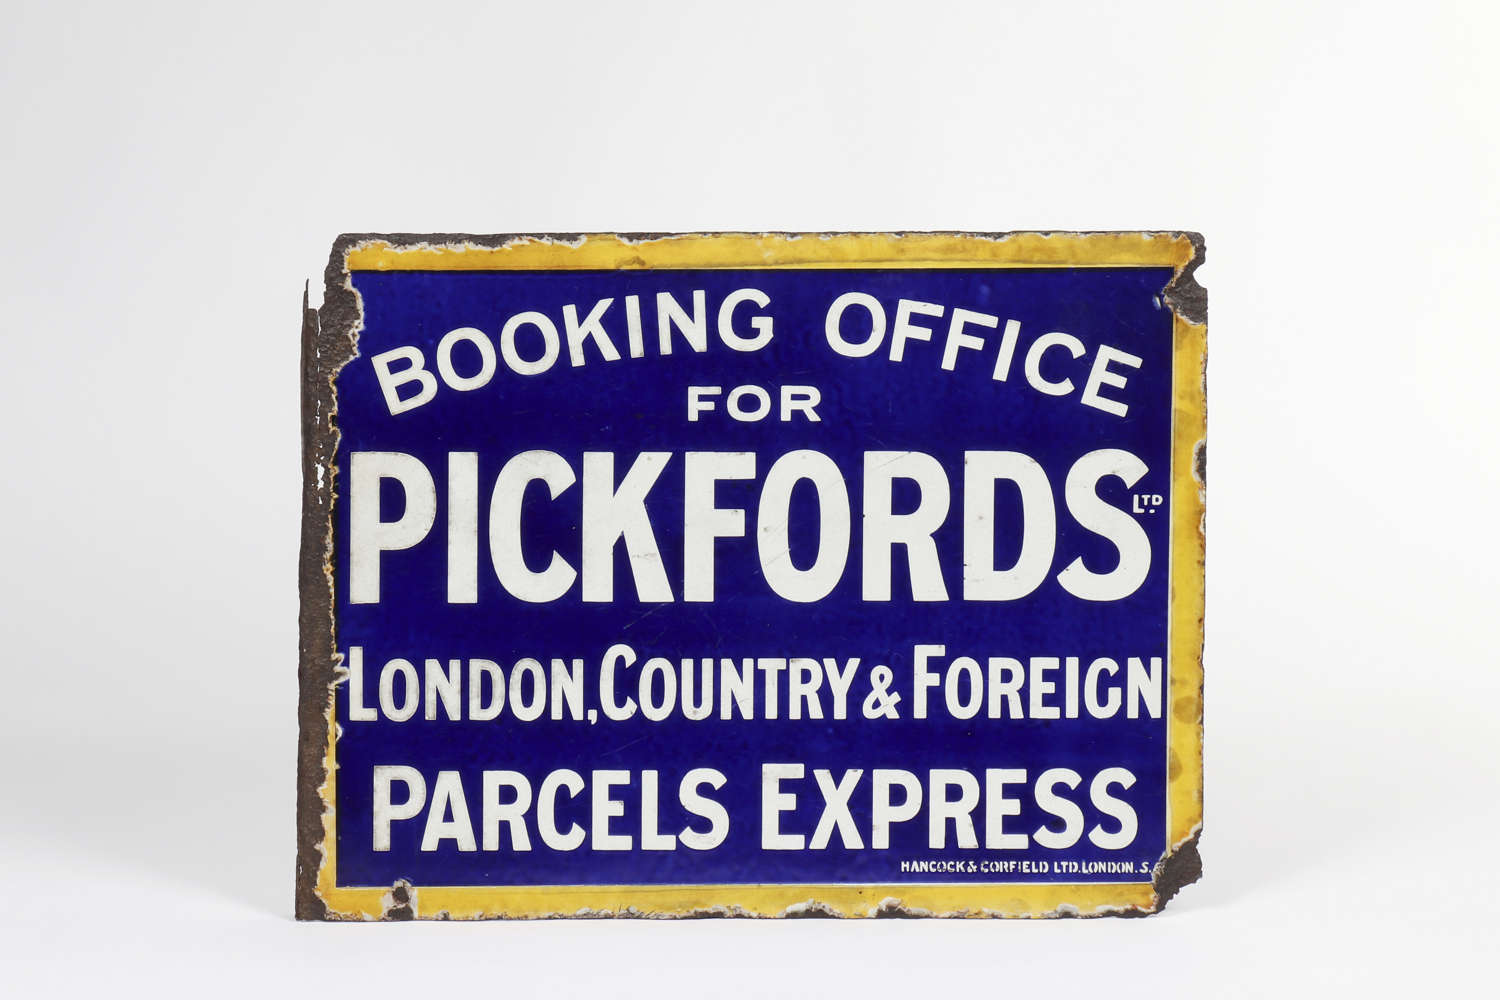 Original enamel advertising sign for Pickfords Ltd